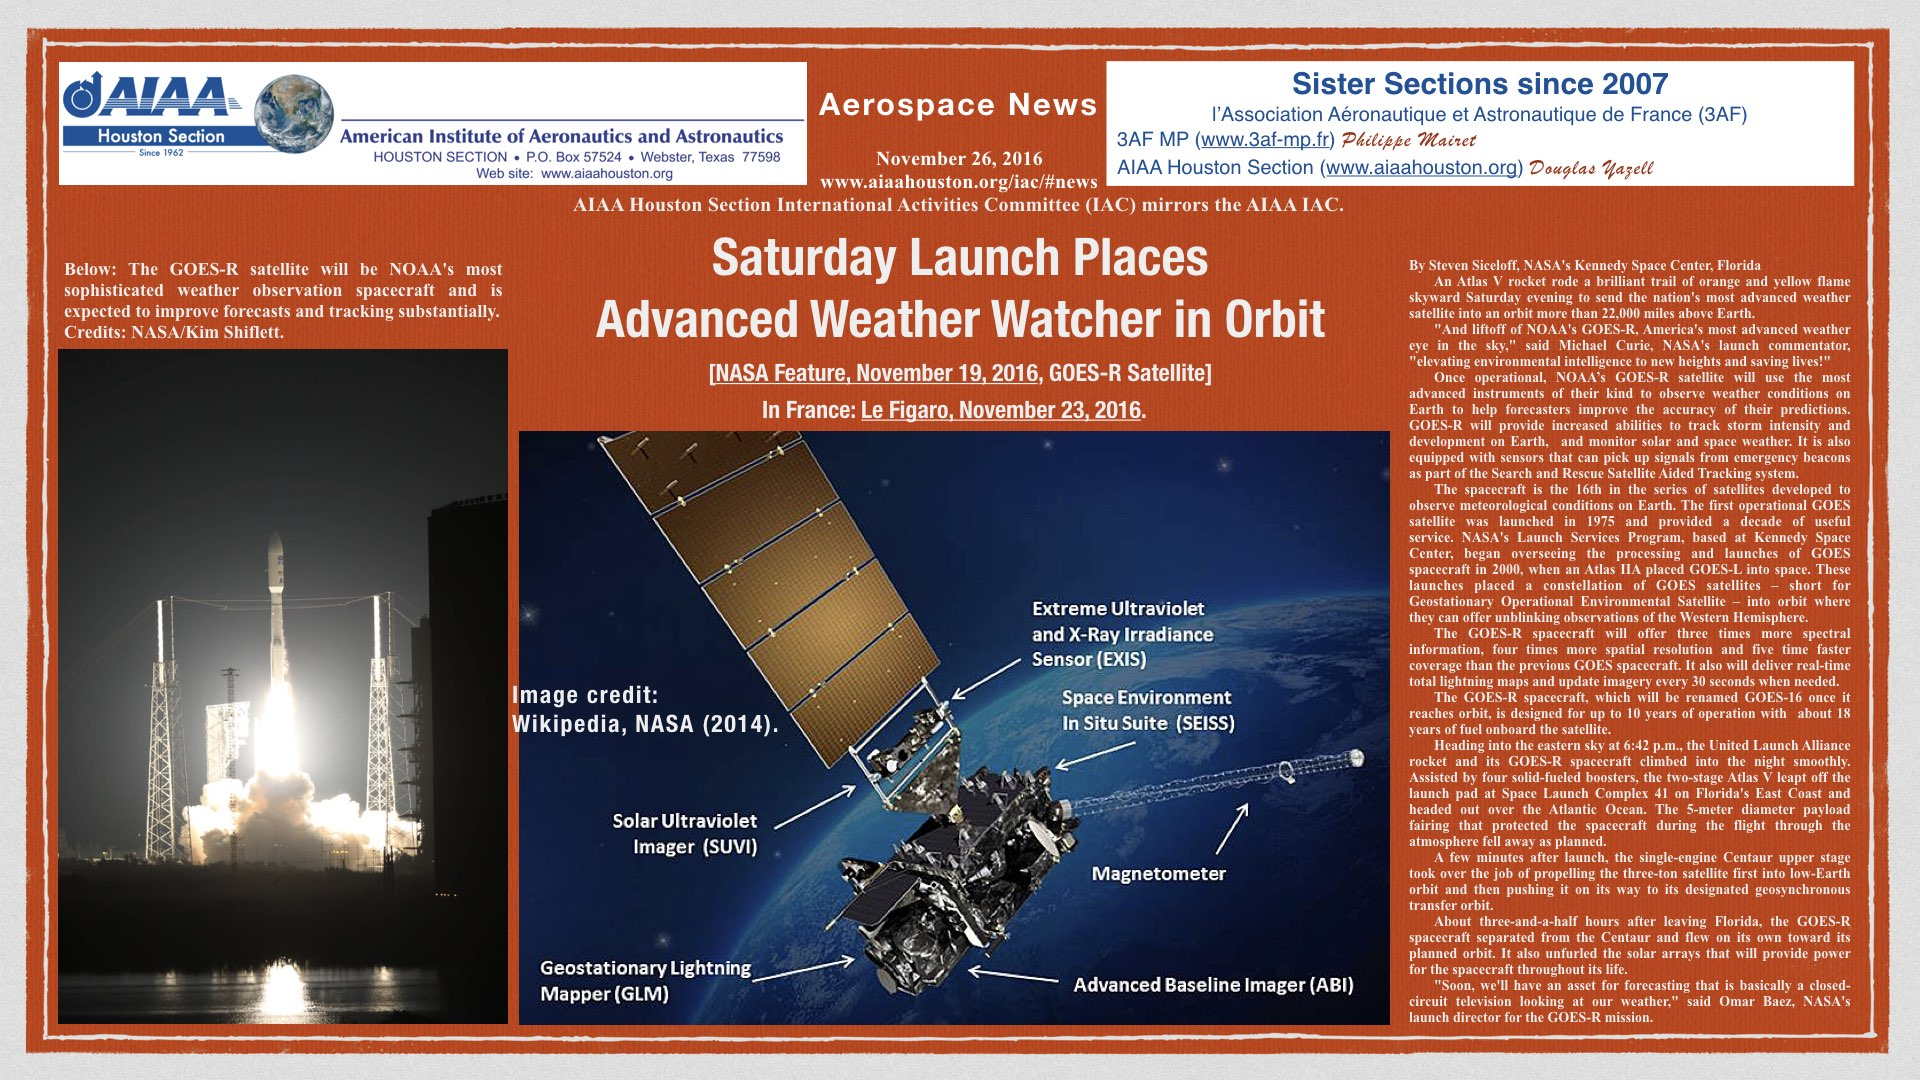 Above: Saturday Launch Places Advanced Weather Watcher in Orbit. (Click to zoom.)